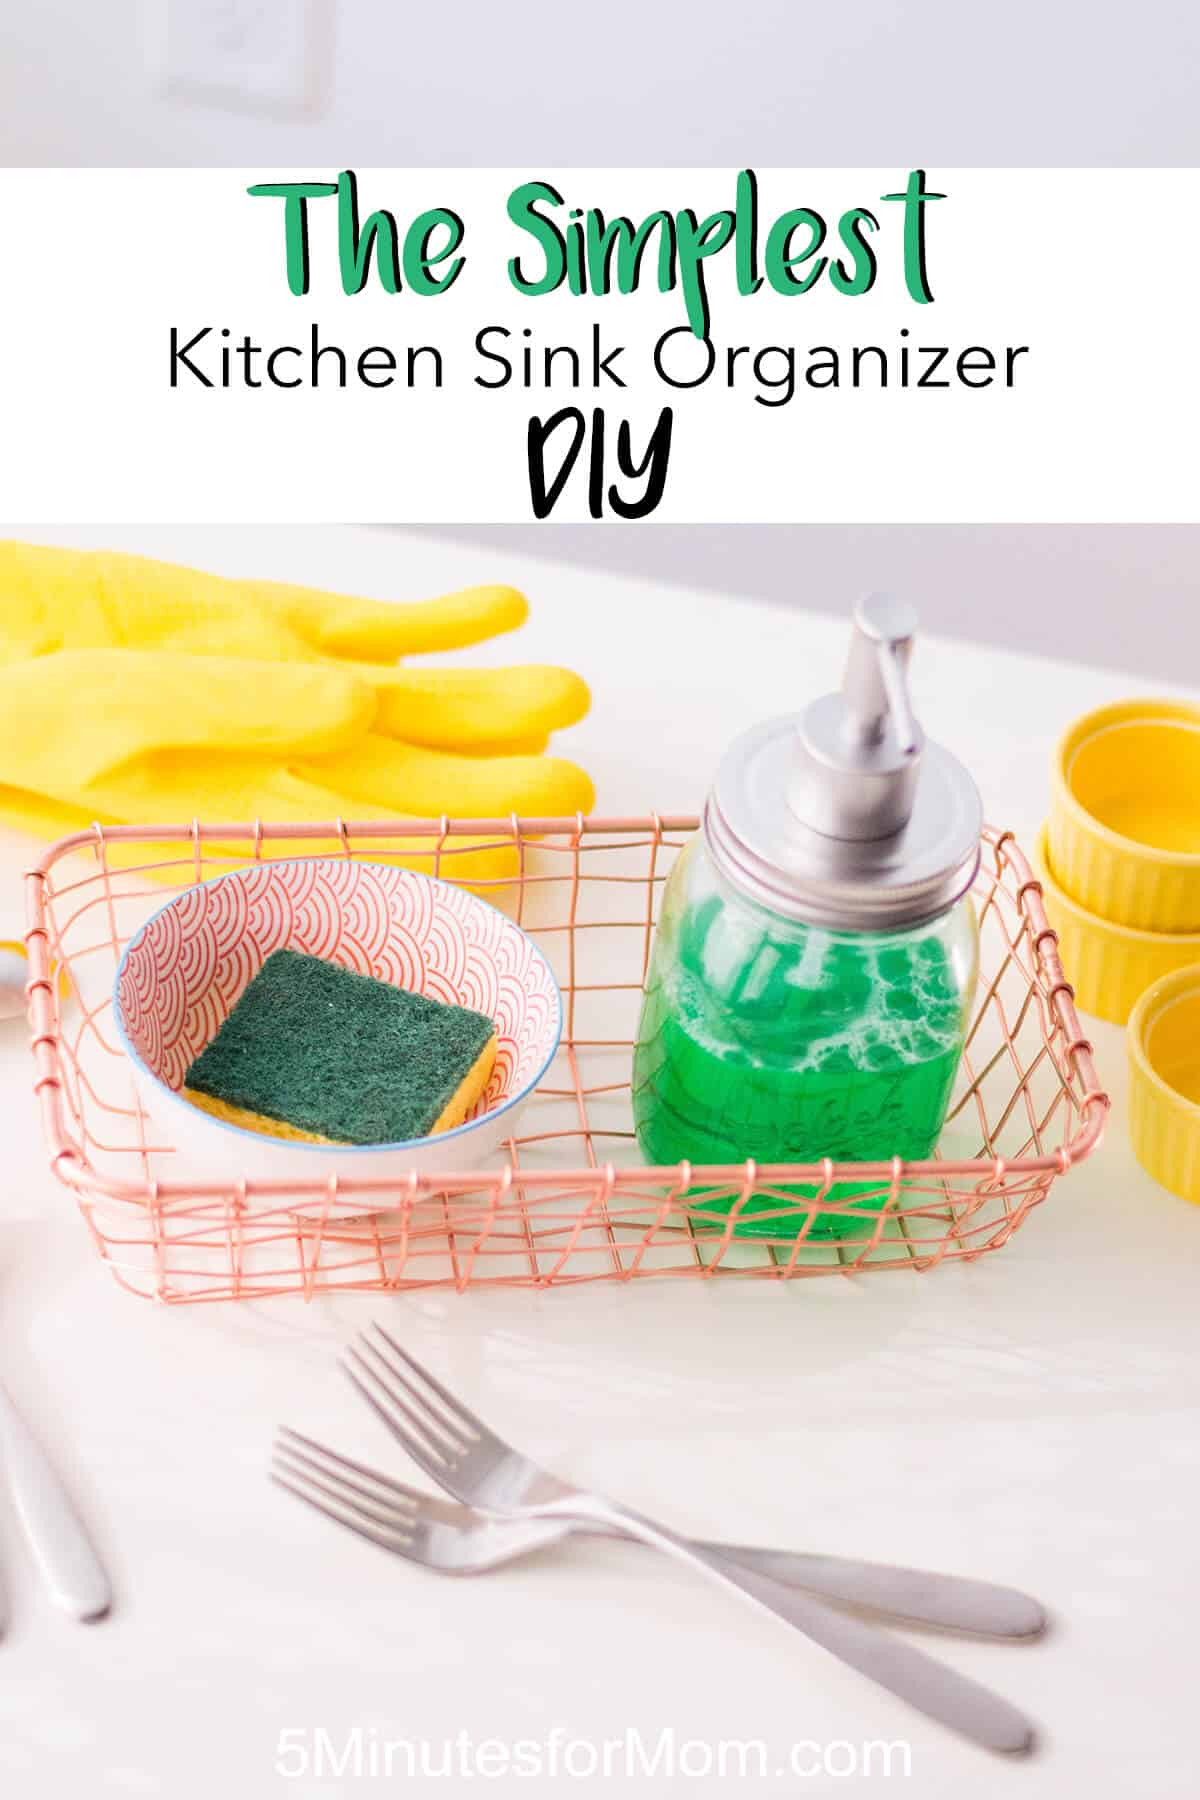 DIY Kitchen Sink Organizer - Our latest home DIY solution: a kitchen sink organizer to keep things clean, fresh, and aesthetically pleasing.